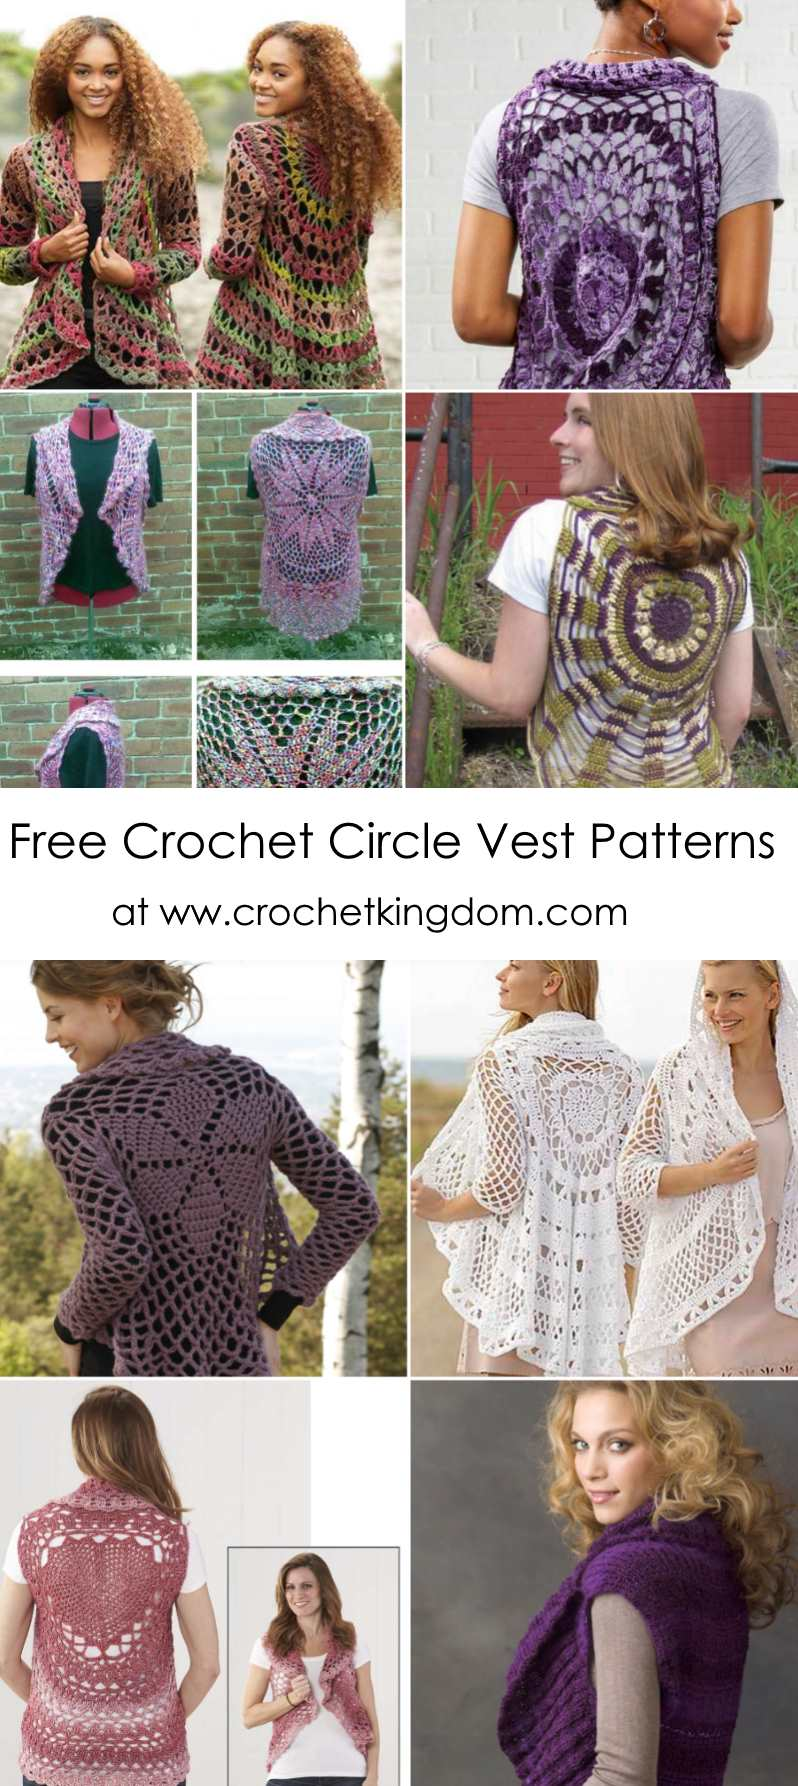 Free Crochet Circle Vest Patterns You Ll Have Fun Crocheting